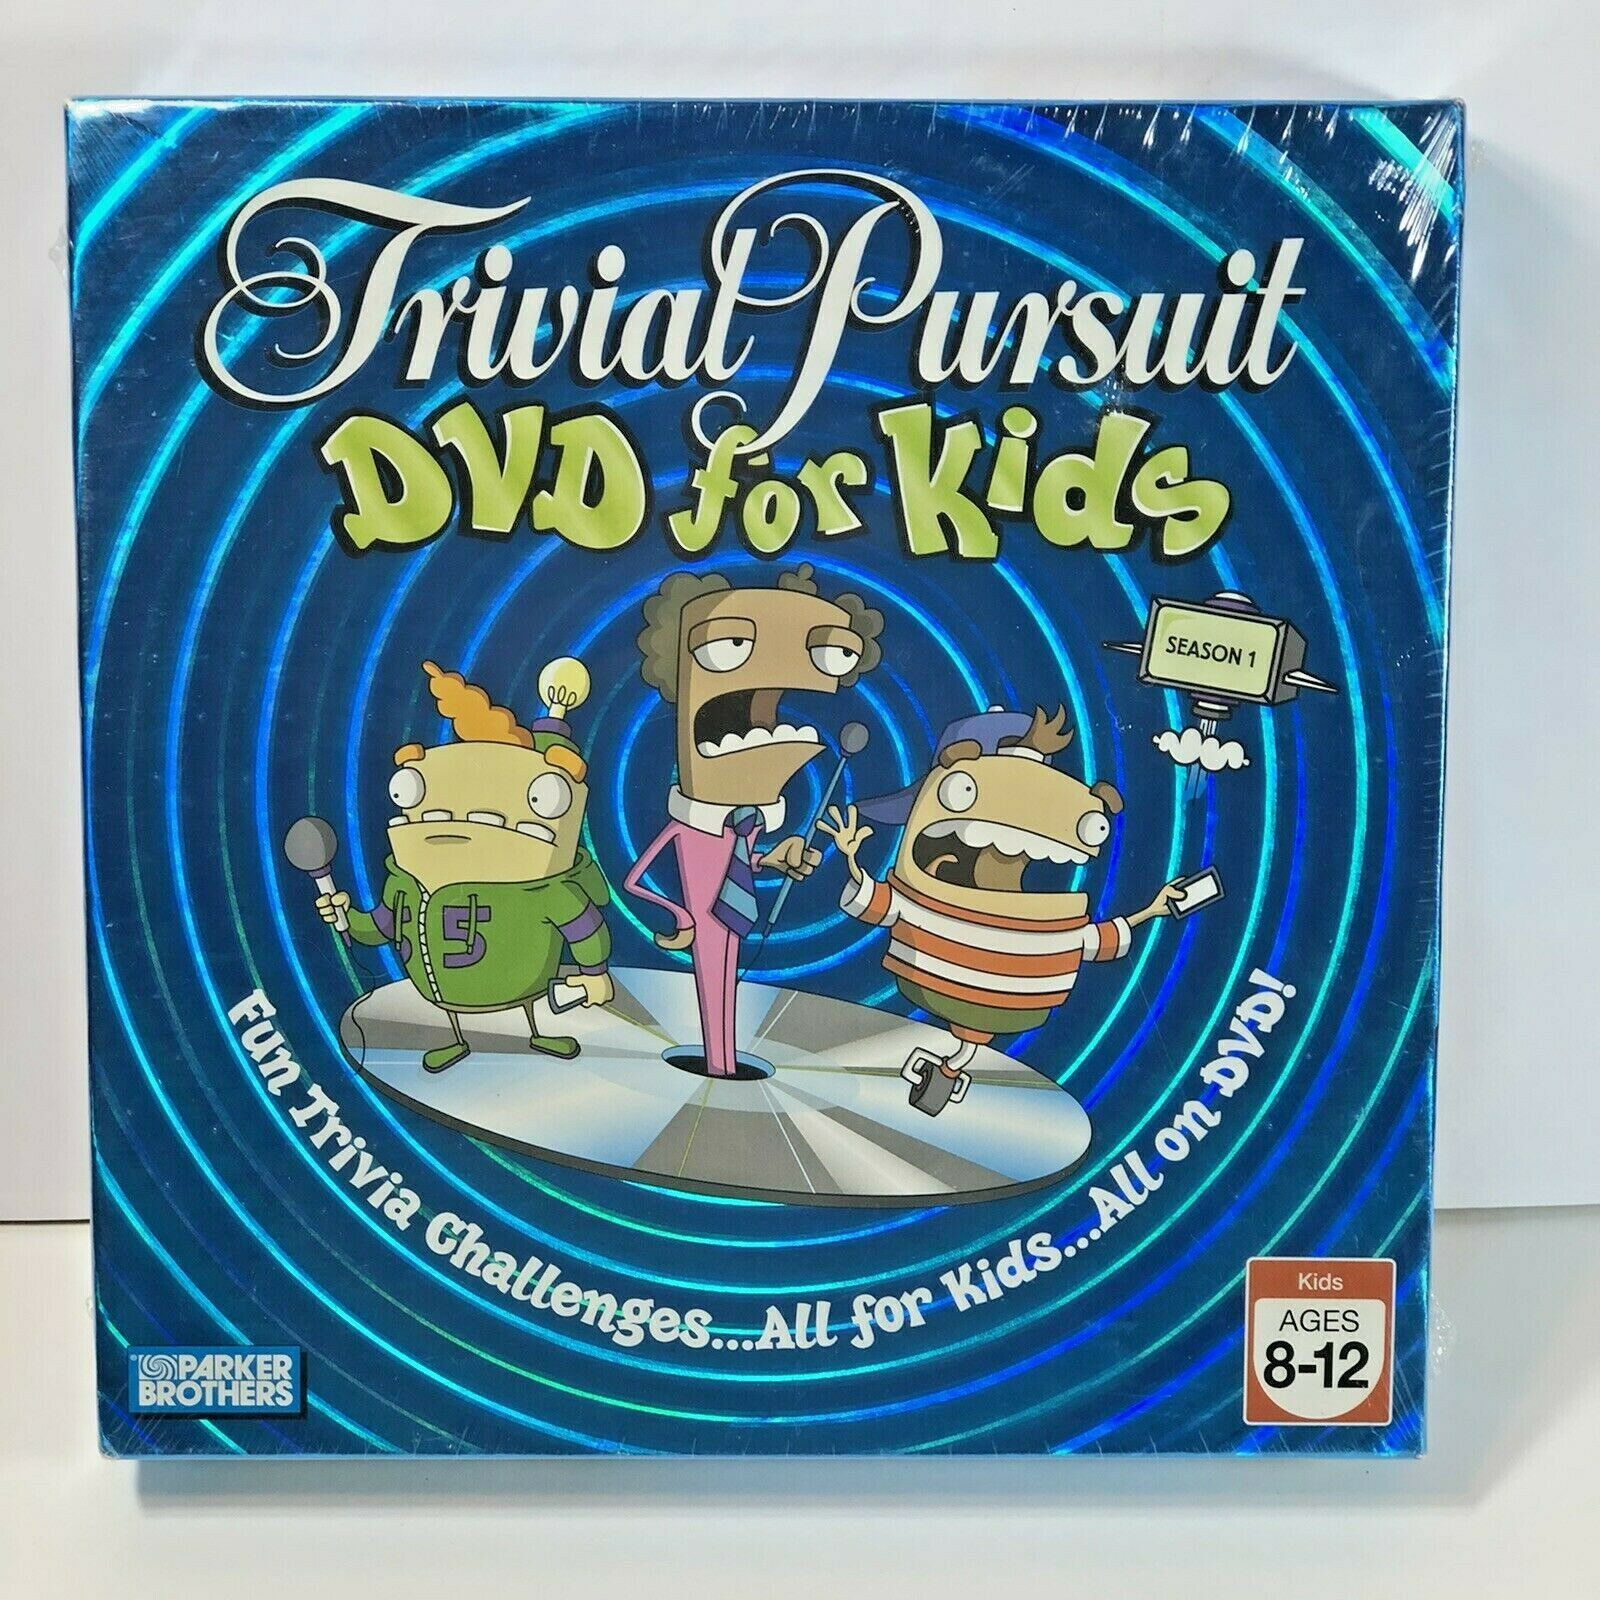 Primary image for Trivial Pursuit DVD for Kids Board Game 2006 Season 1 Ages 8-12 New In Box